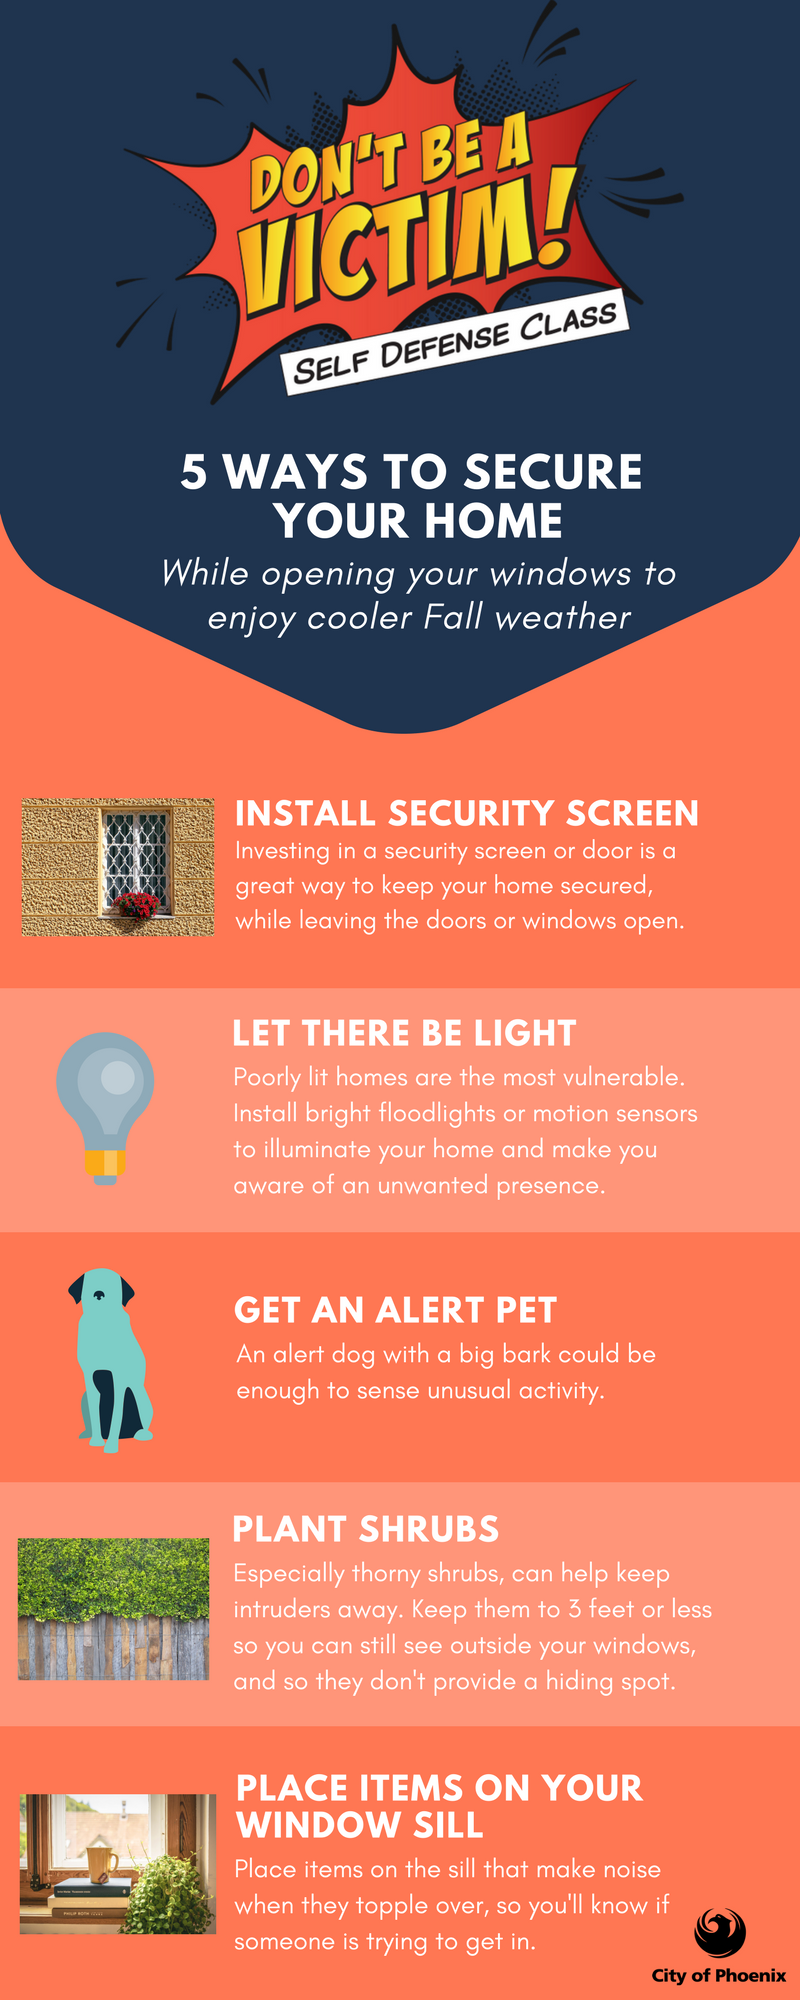 5 Ways to Secure Your Home: 1. Install Security Screens. 2. Let There Be Light. 3. Get an Alert Pet. 4. Plant Shrubs. 5. Place items on your window sills